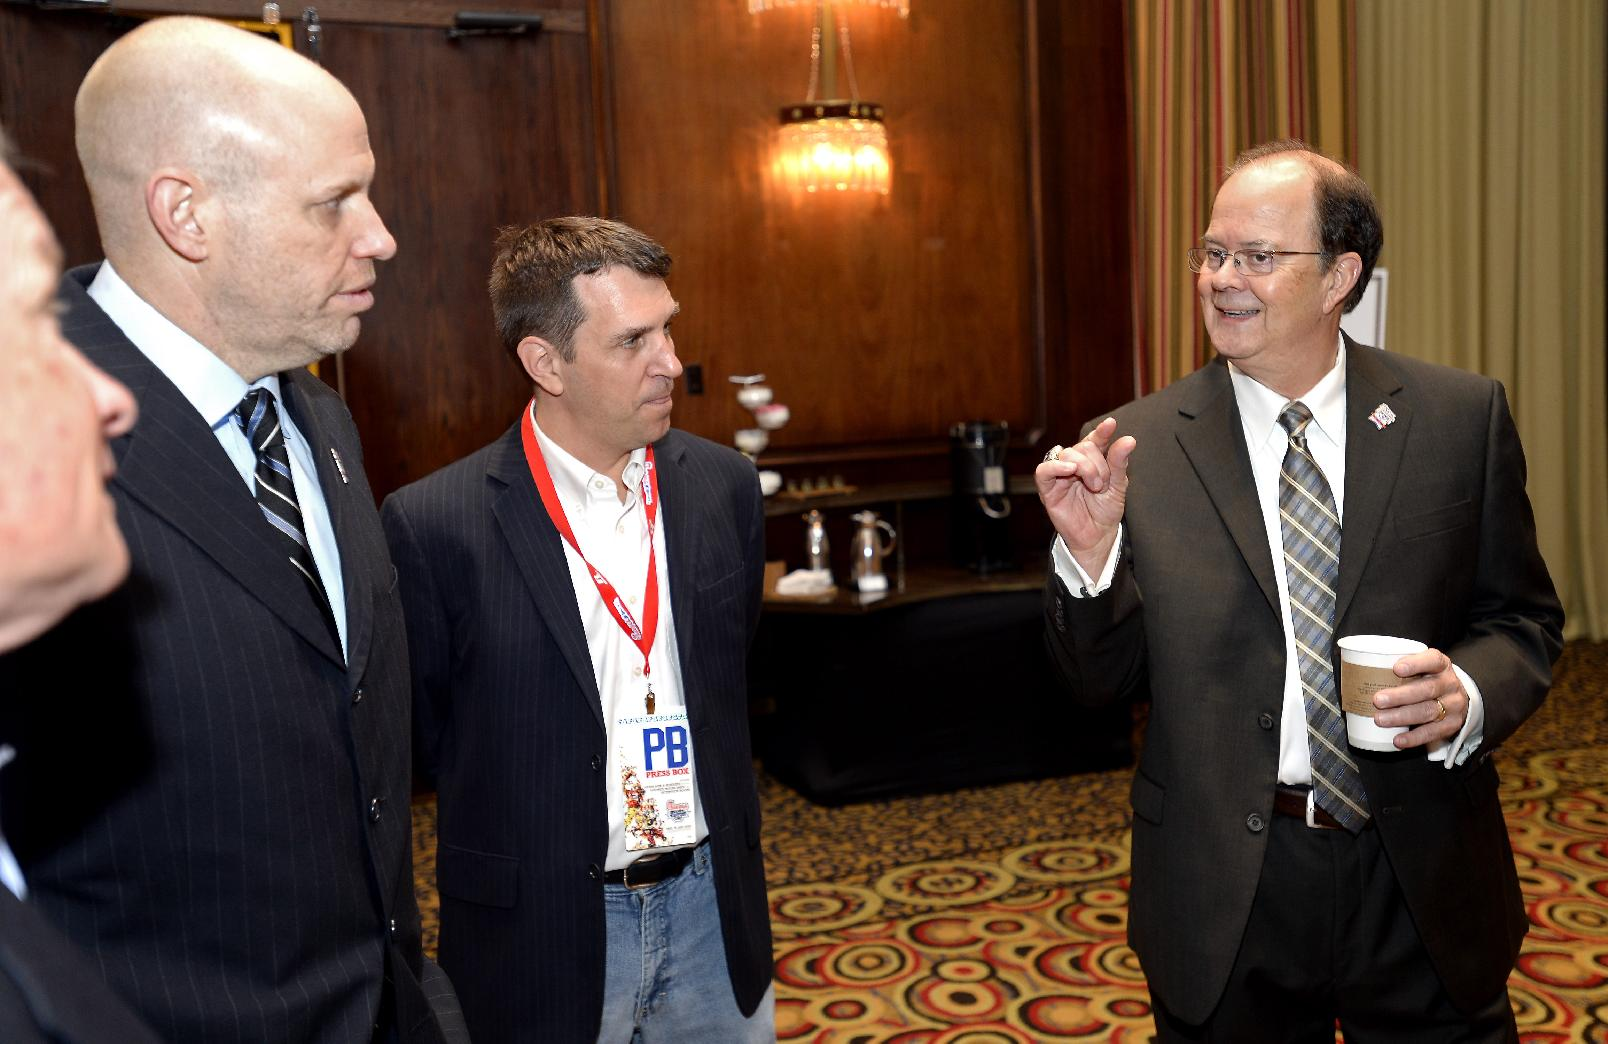 Duke head football coach David Cutcliffe, right, attends a Chick-fil-A Bowl reception before he is named the Bobby Dodd Coach of the Year on Monday, Dec. 30, 2013, in Atlanta. Cutcliff's Duke team faces Texas A&M for the Chick-fil-A Bowl on Tuesday night